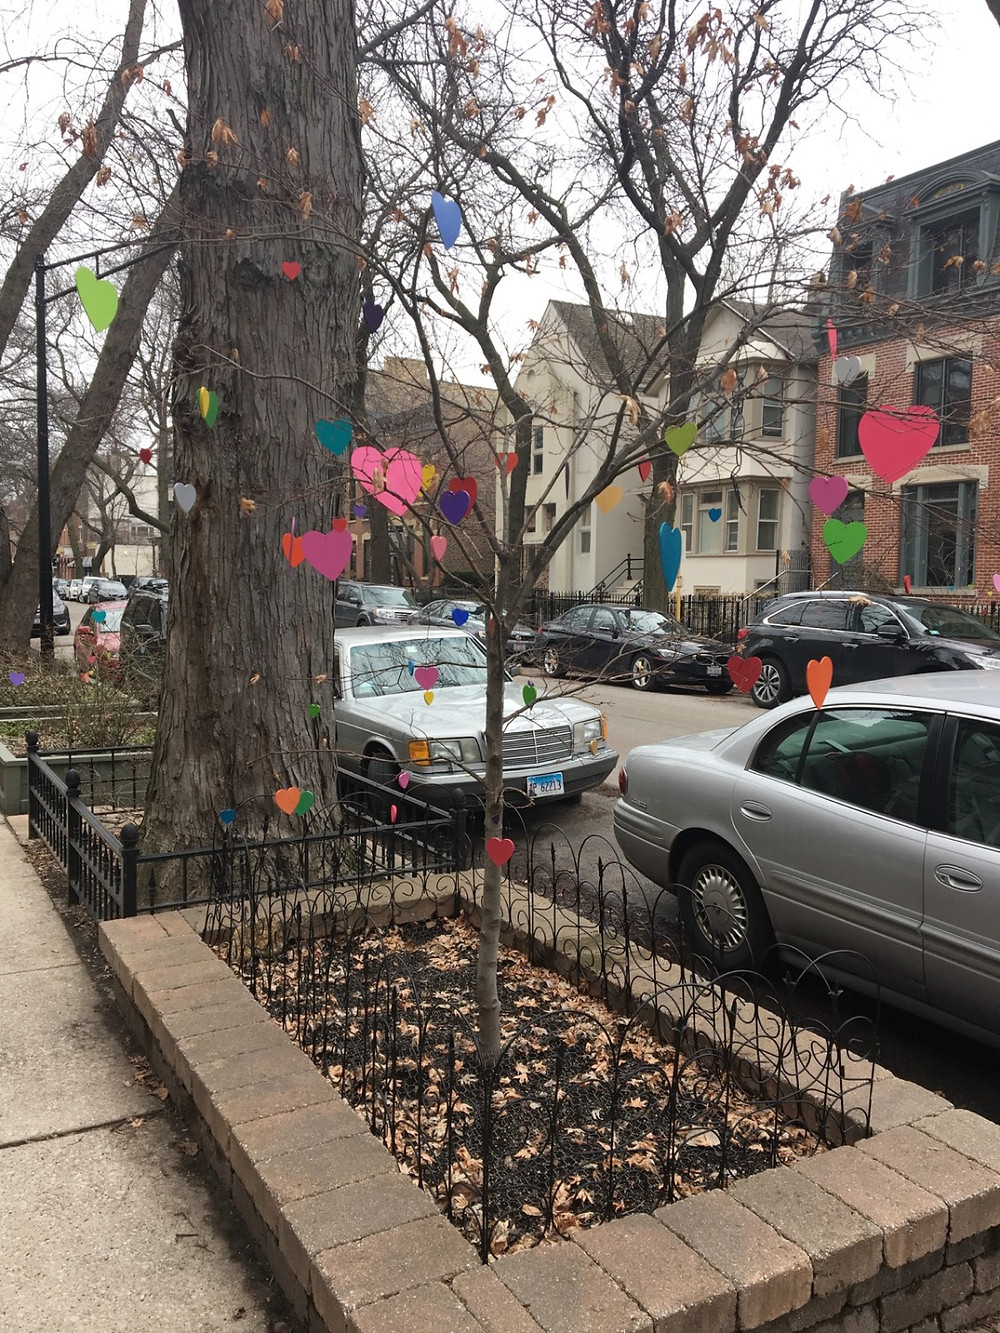 City neighborhood view of tree with colorful hearts. Photo by Julia Dinverno